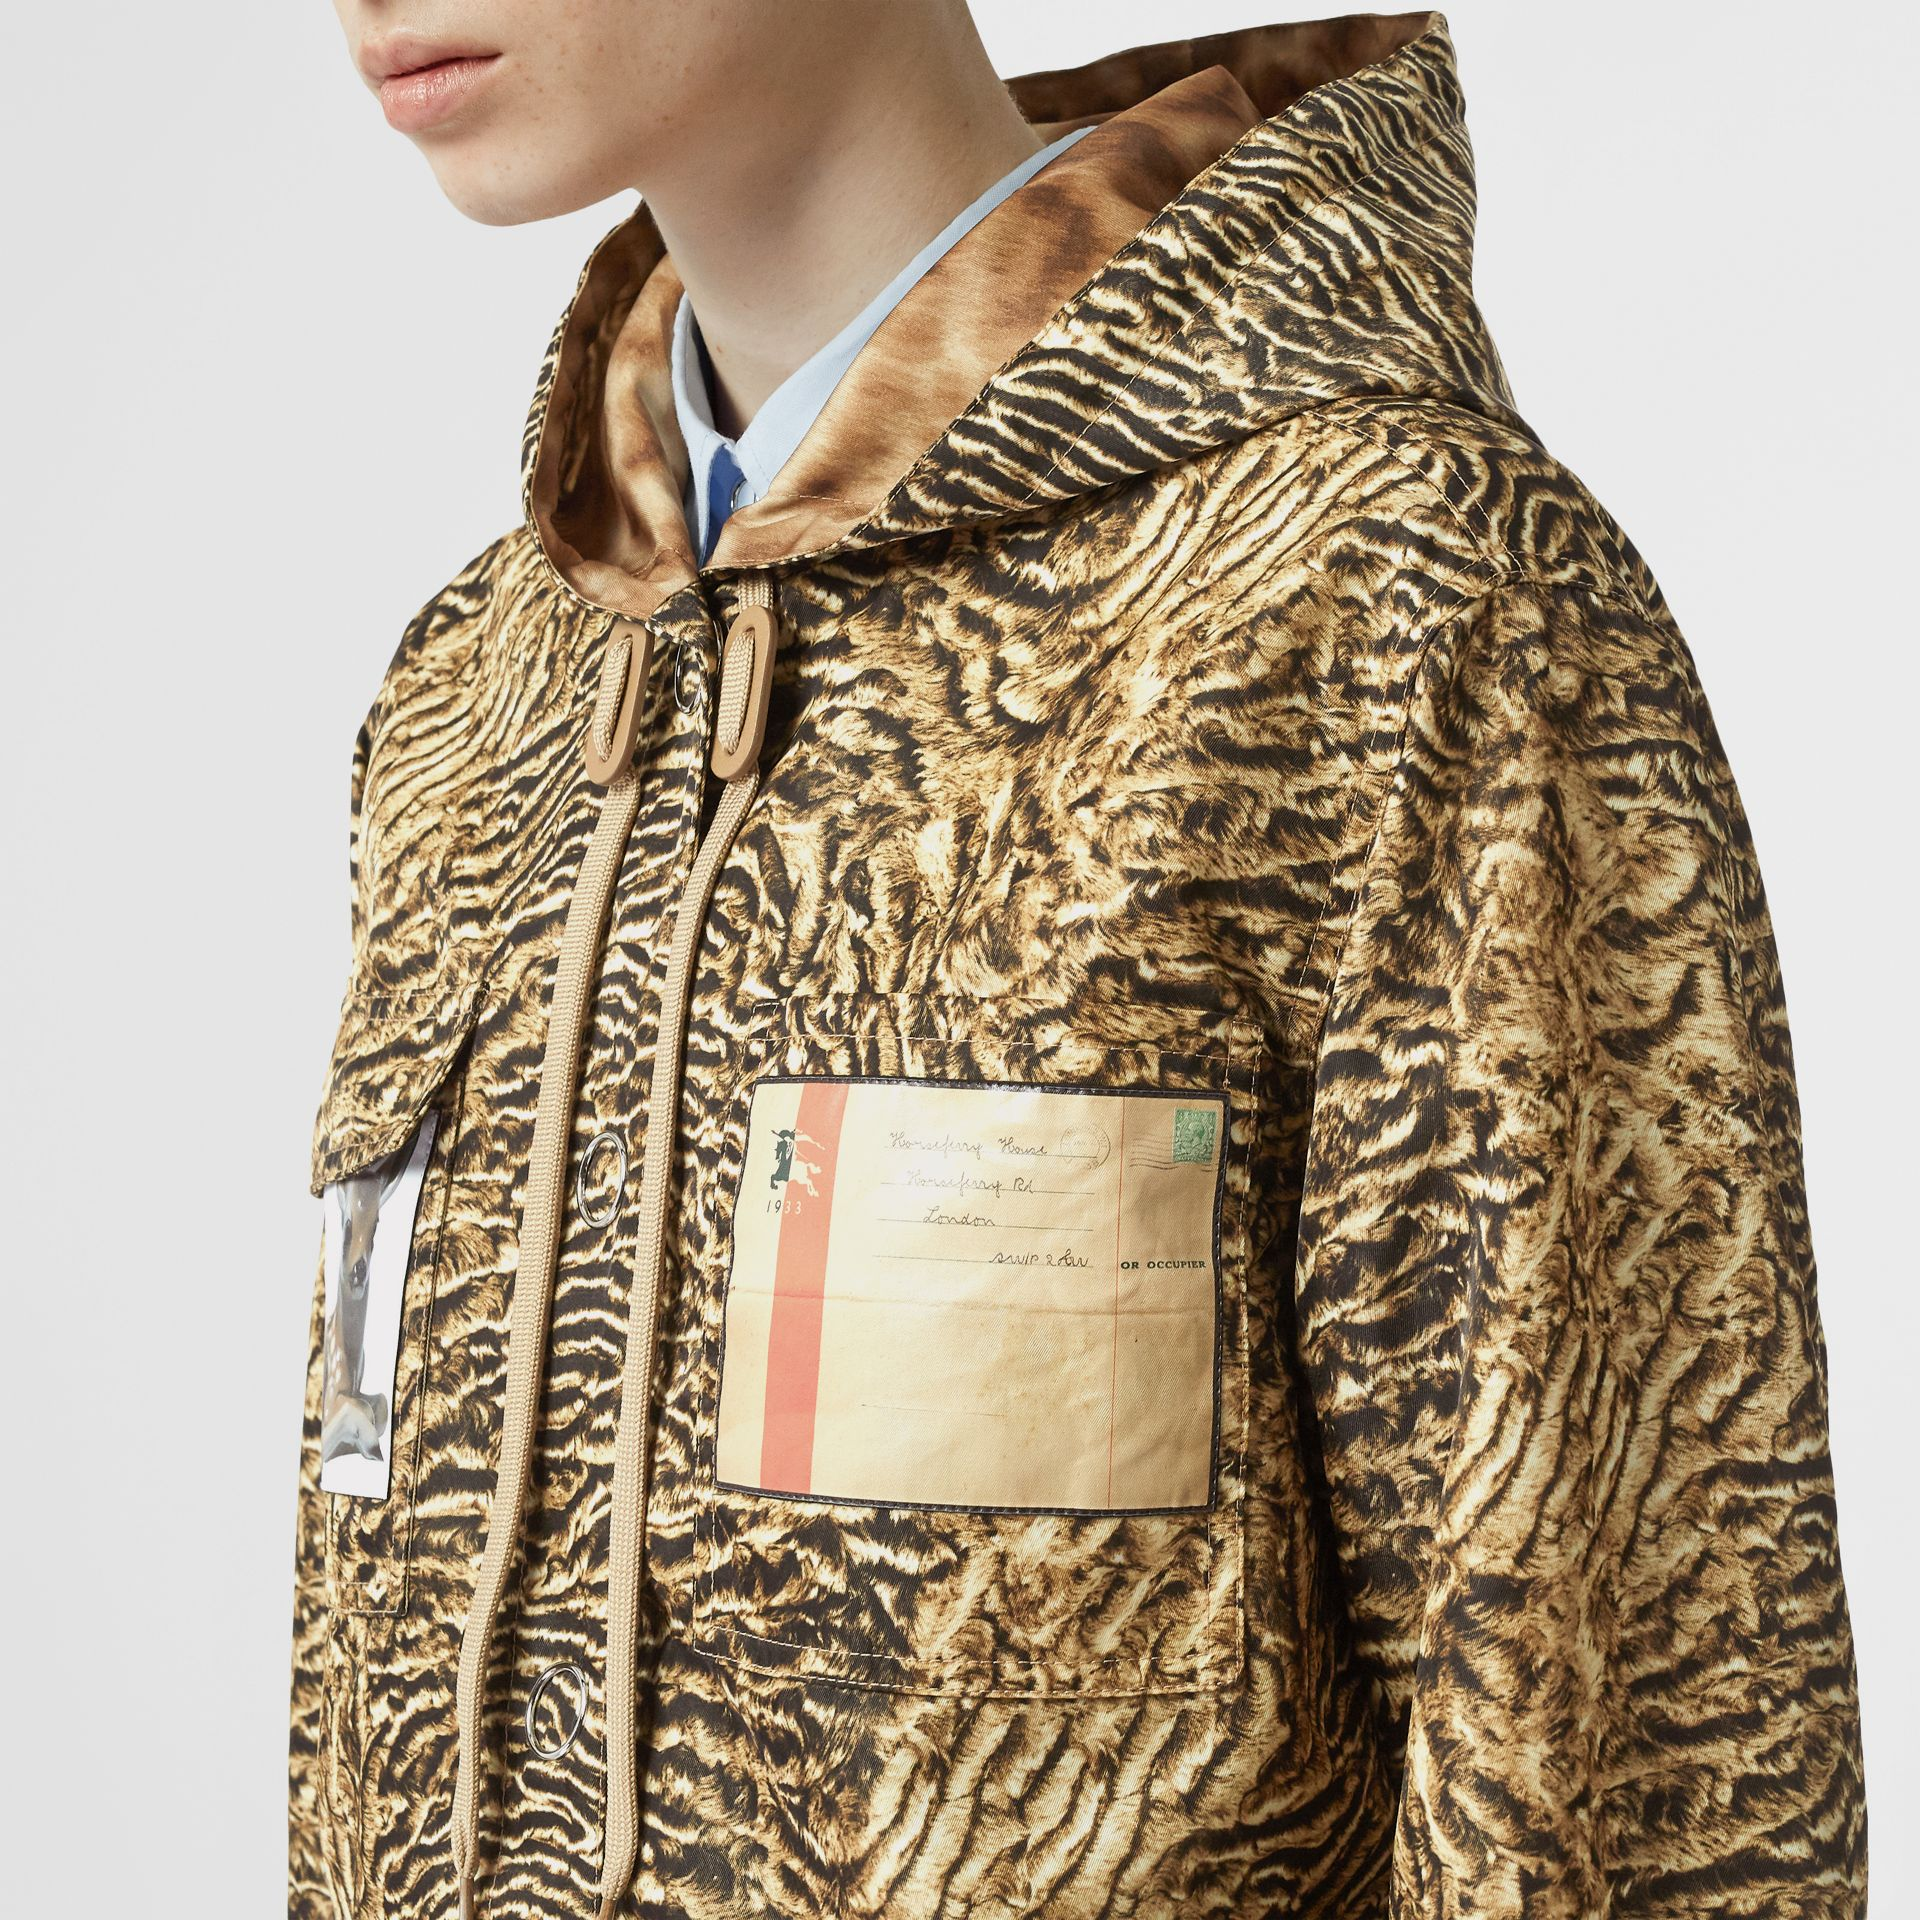 Tiger Print Lightweight Hooded Jacket in Beige - Women | Burberry - gallery image 4